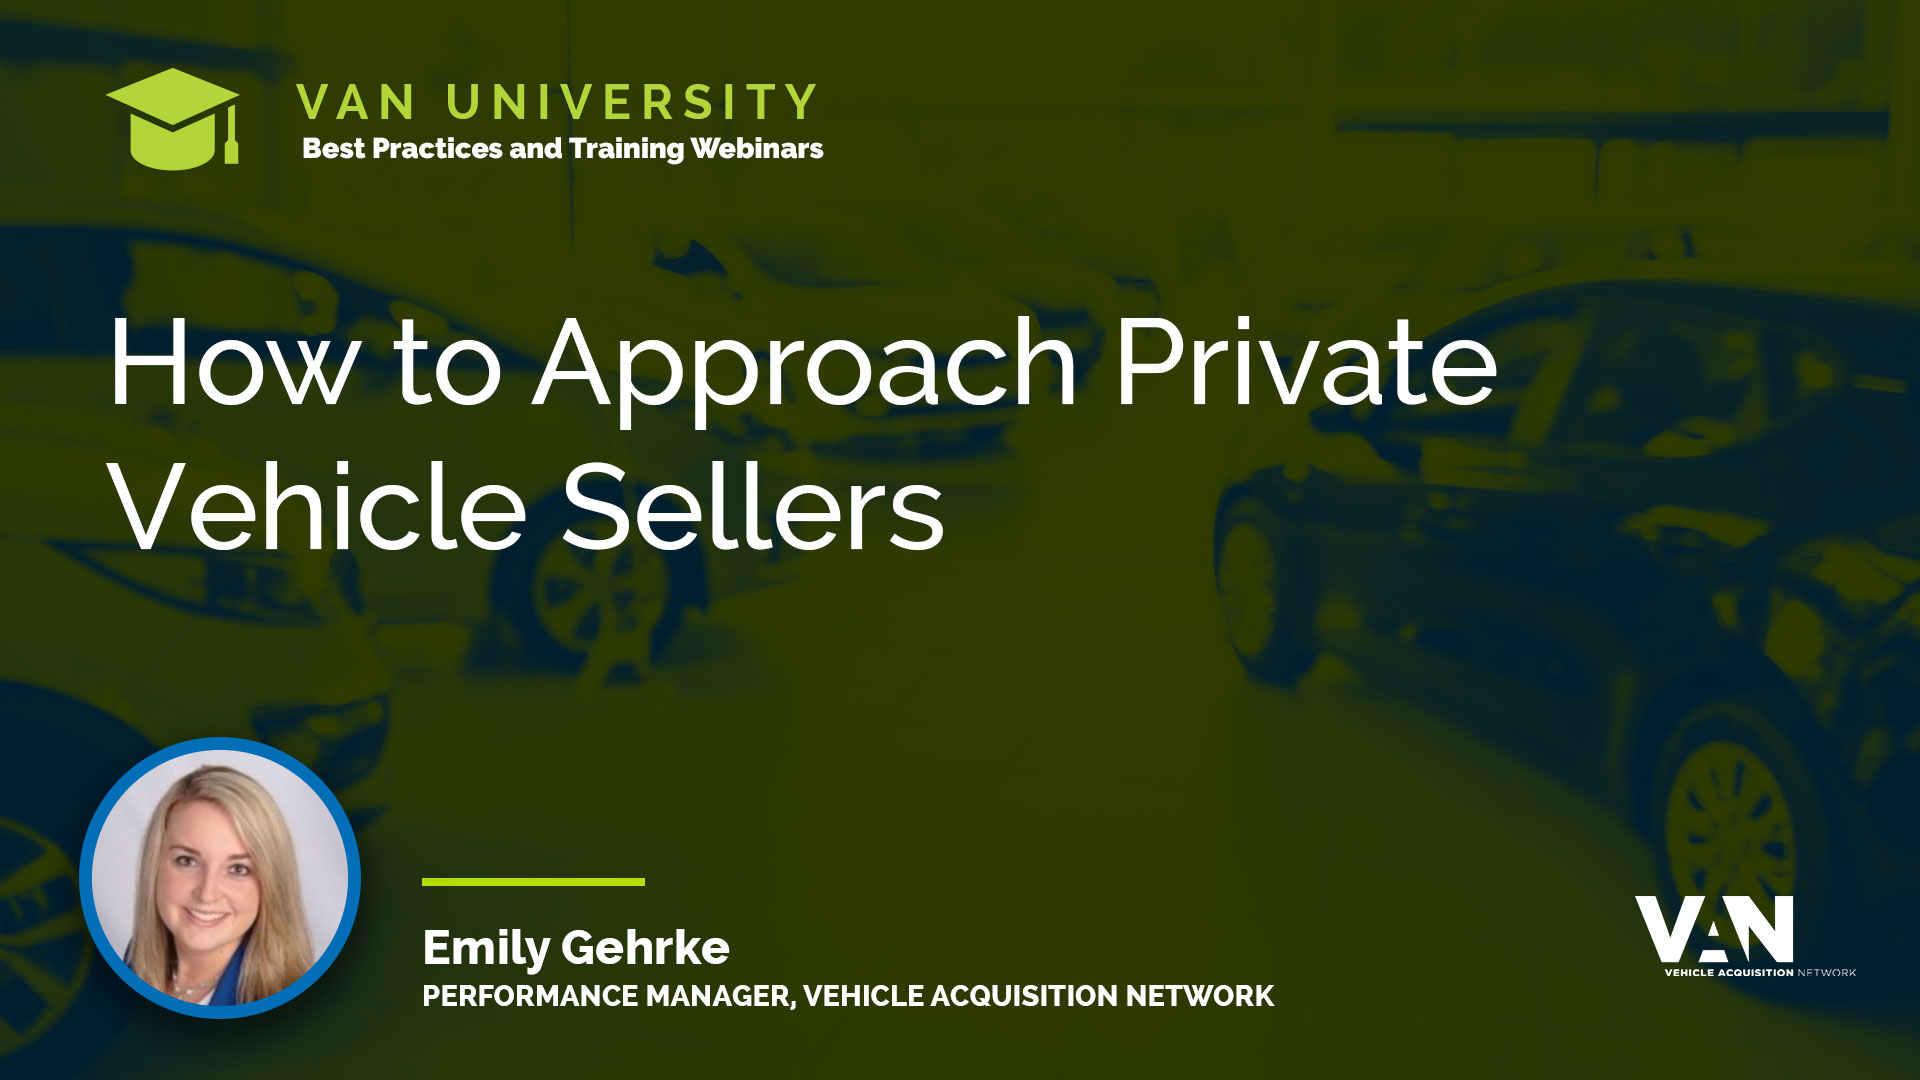 How to Approach Private Vehicle Sellers